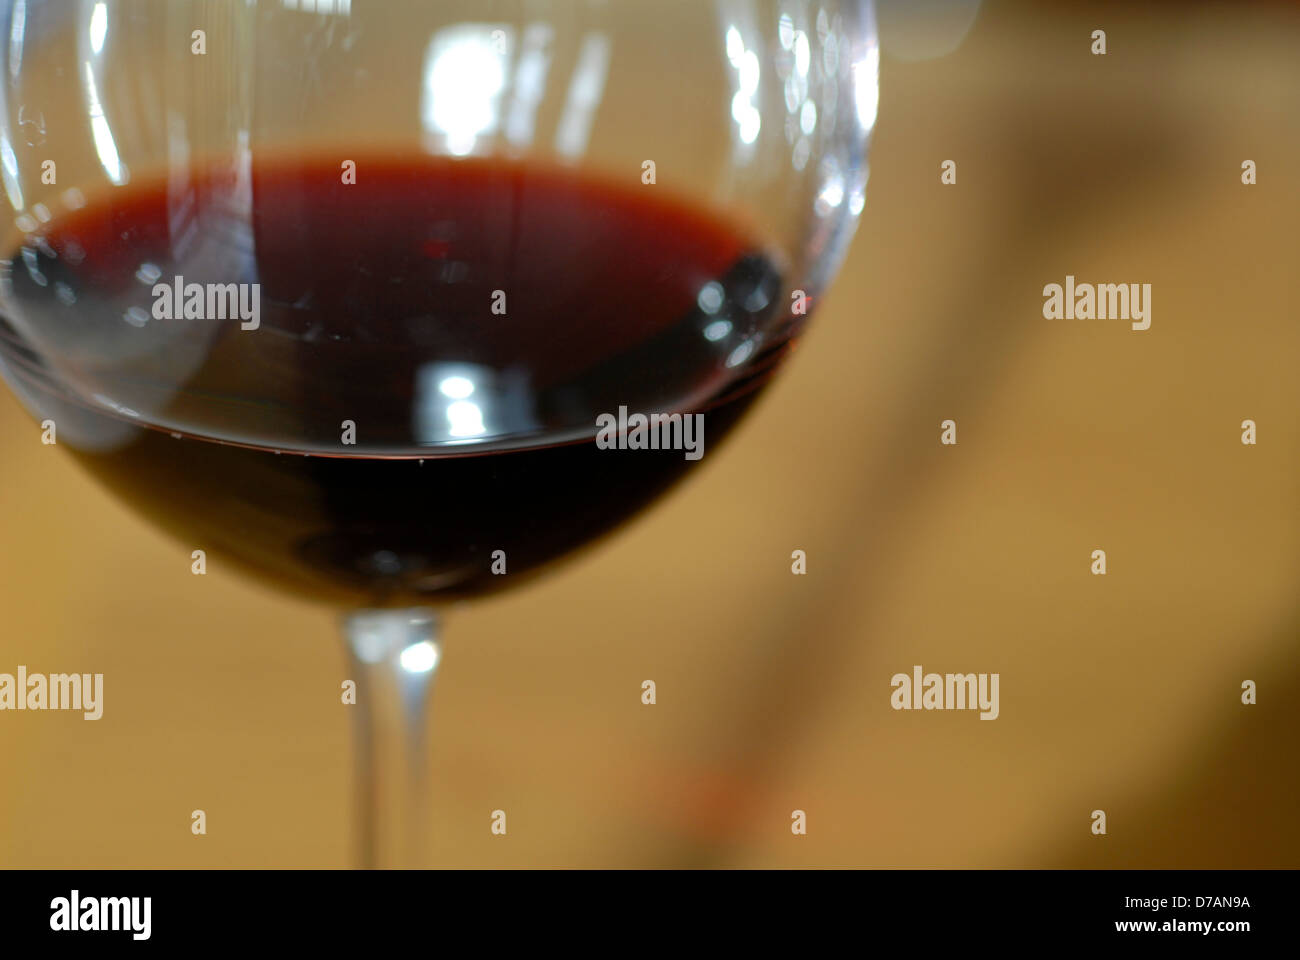 A glass of red wine. Stock Photo